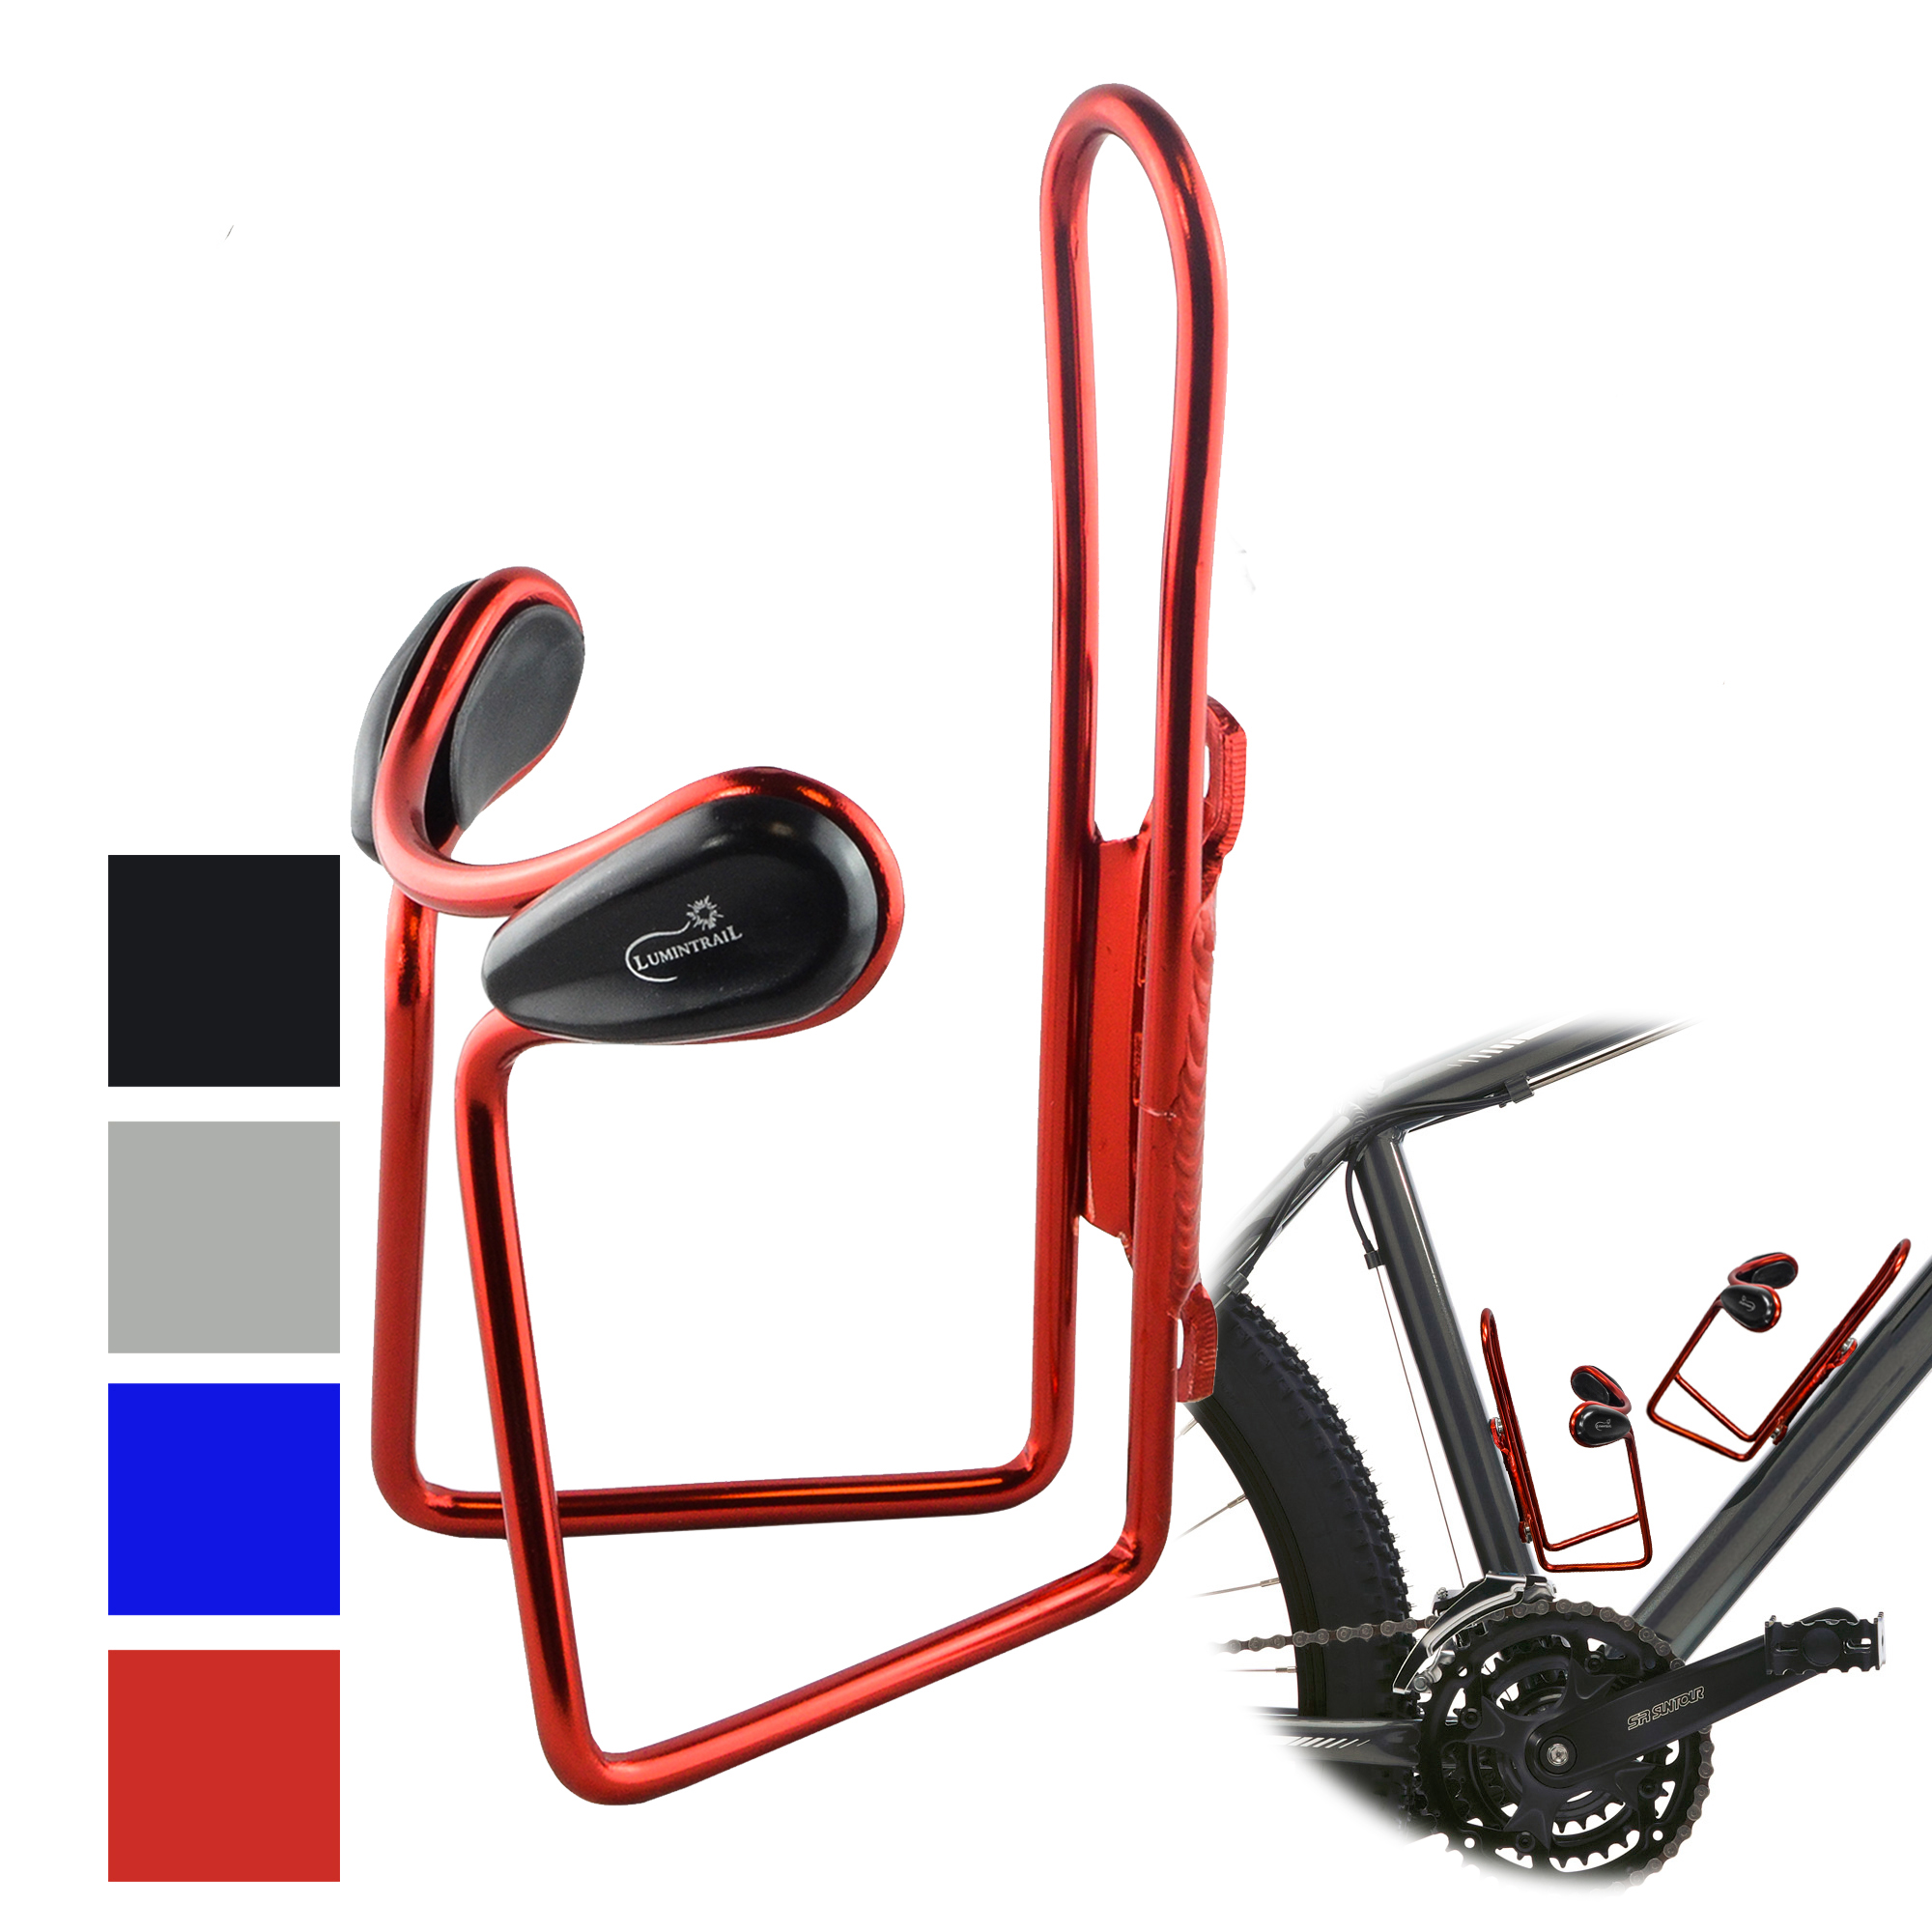 Lumintrail Lightweight Aluminum Alloy Bicycle Bike Water Bottle Cage Holder - 4 Color Available